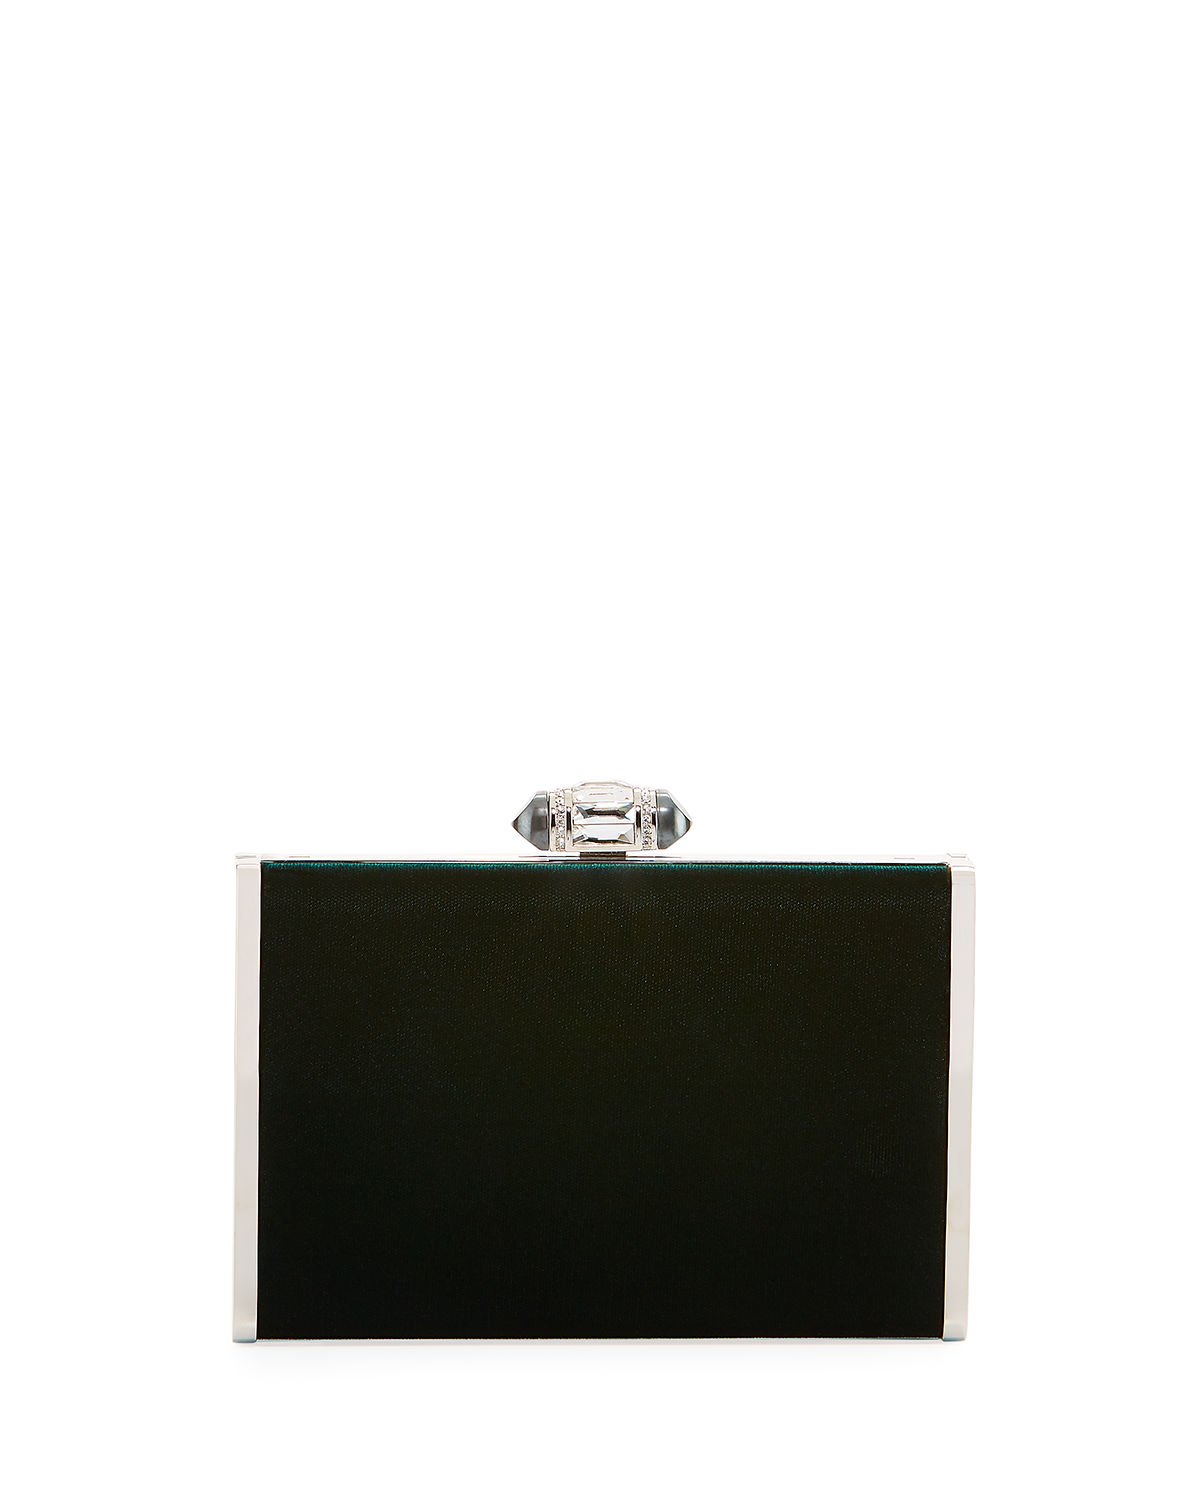 Tall Slender Rectangle Evening Clutch Bag